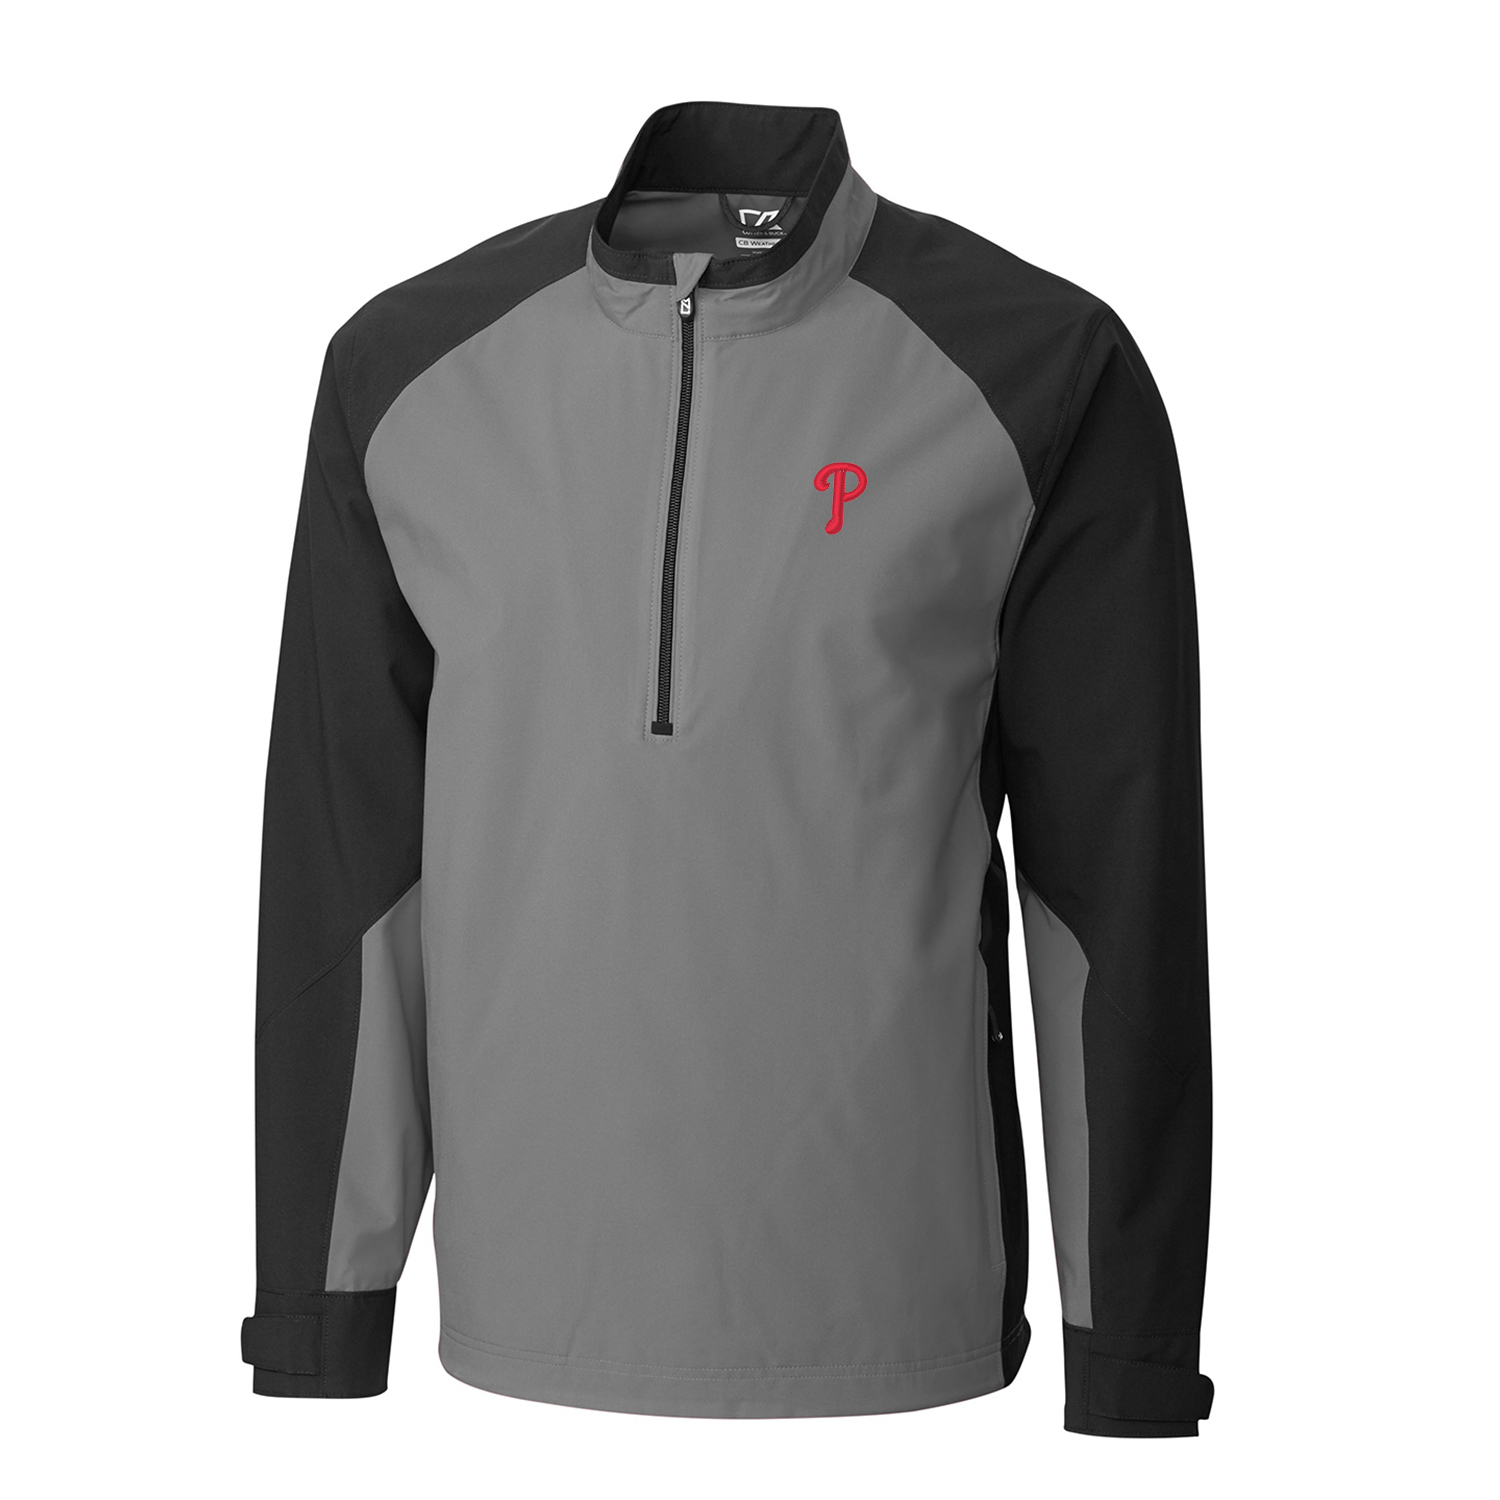 Men's Cutter & Buck Gray/Black Philadelphia Phillies Summit WeatherTec Half-Zip Pullover Jacket